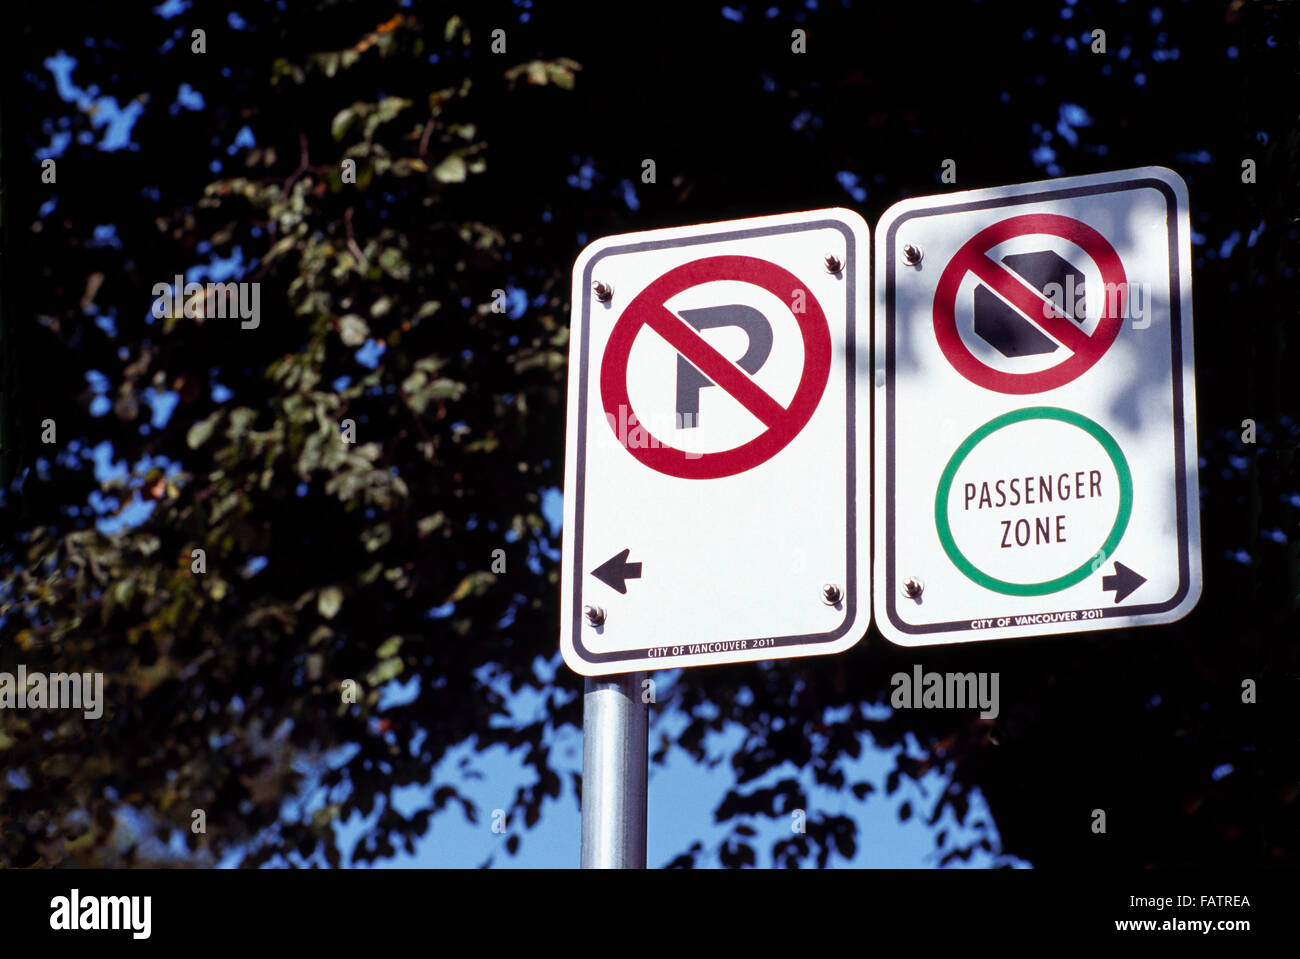 City Bylaw Sign - No Parking, No Stopping, Passenger Zone - Stock Image